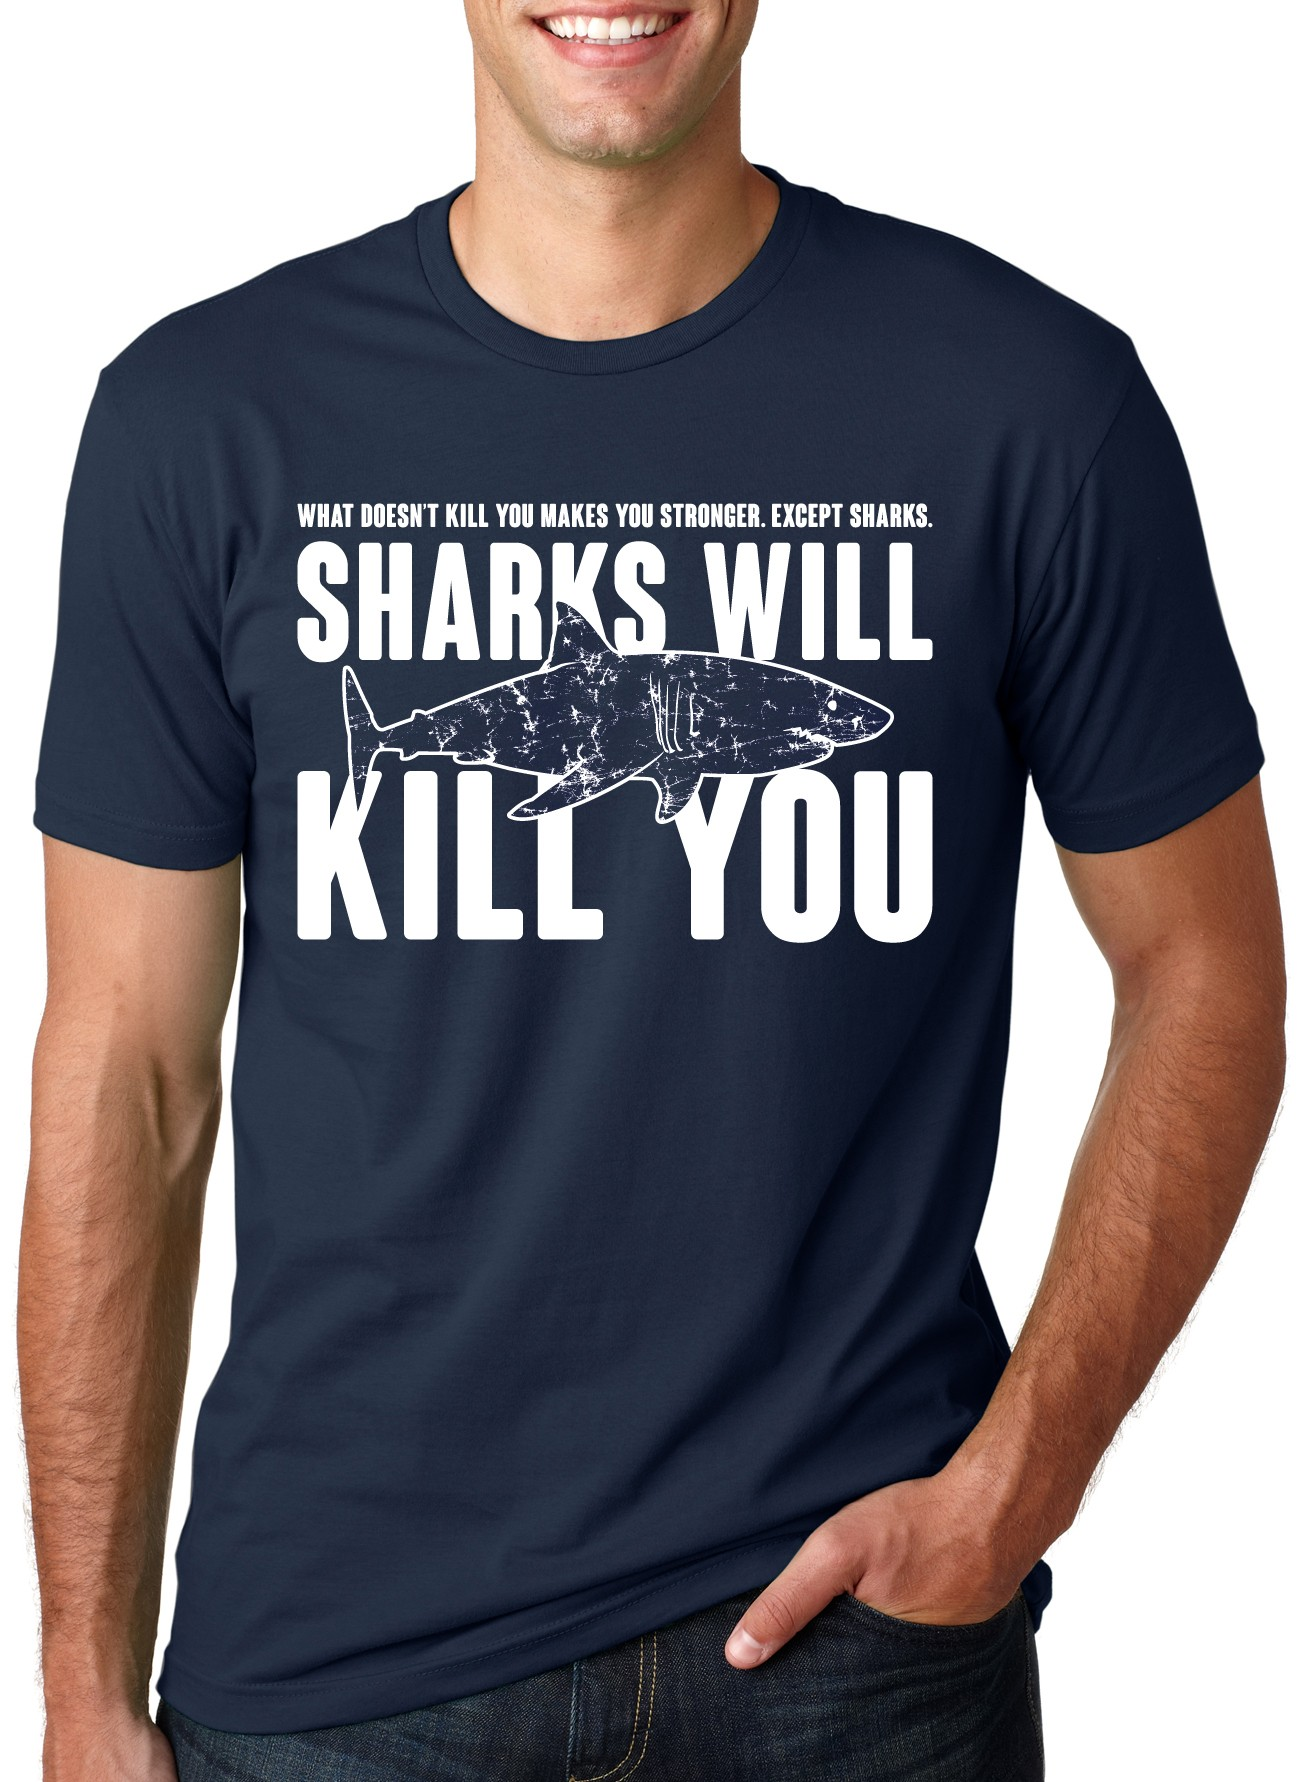 d36fc4b84 Mens Sharks Will Kill You Funny T Shirt Sarcasm Novelty Offensive ...